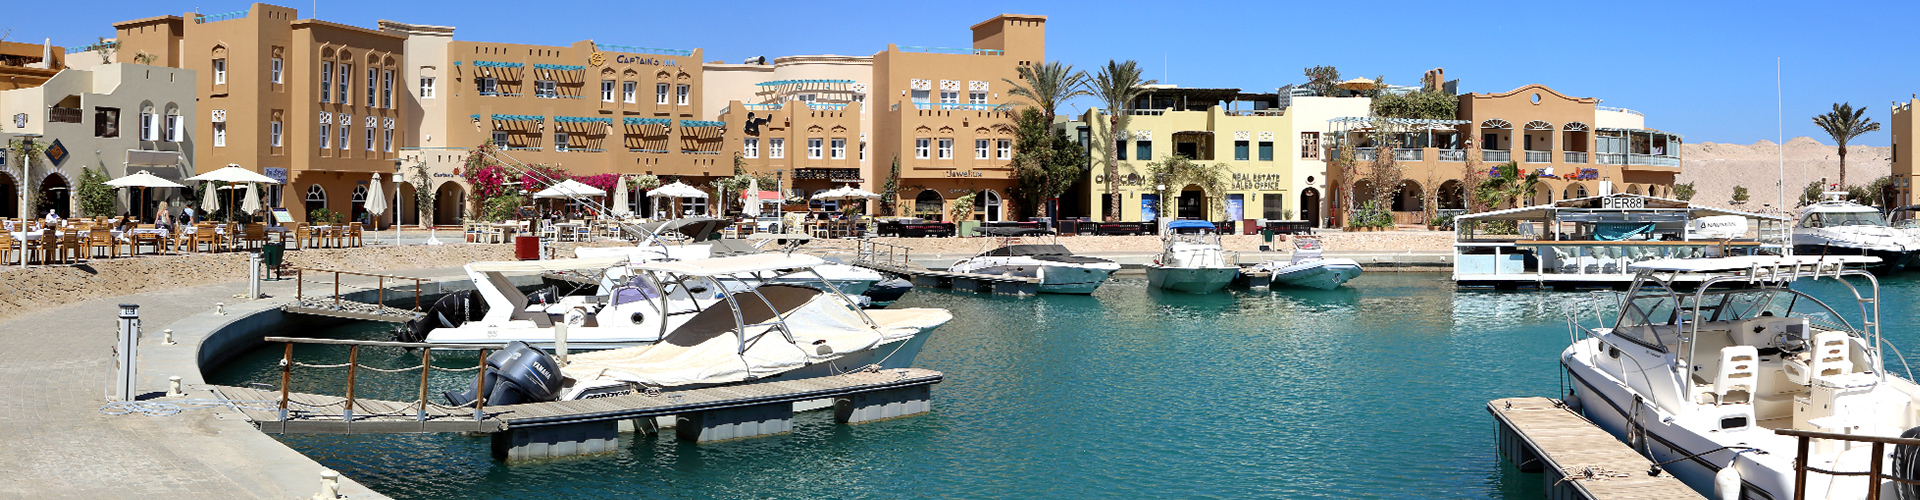 el-gouna-kite-destination